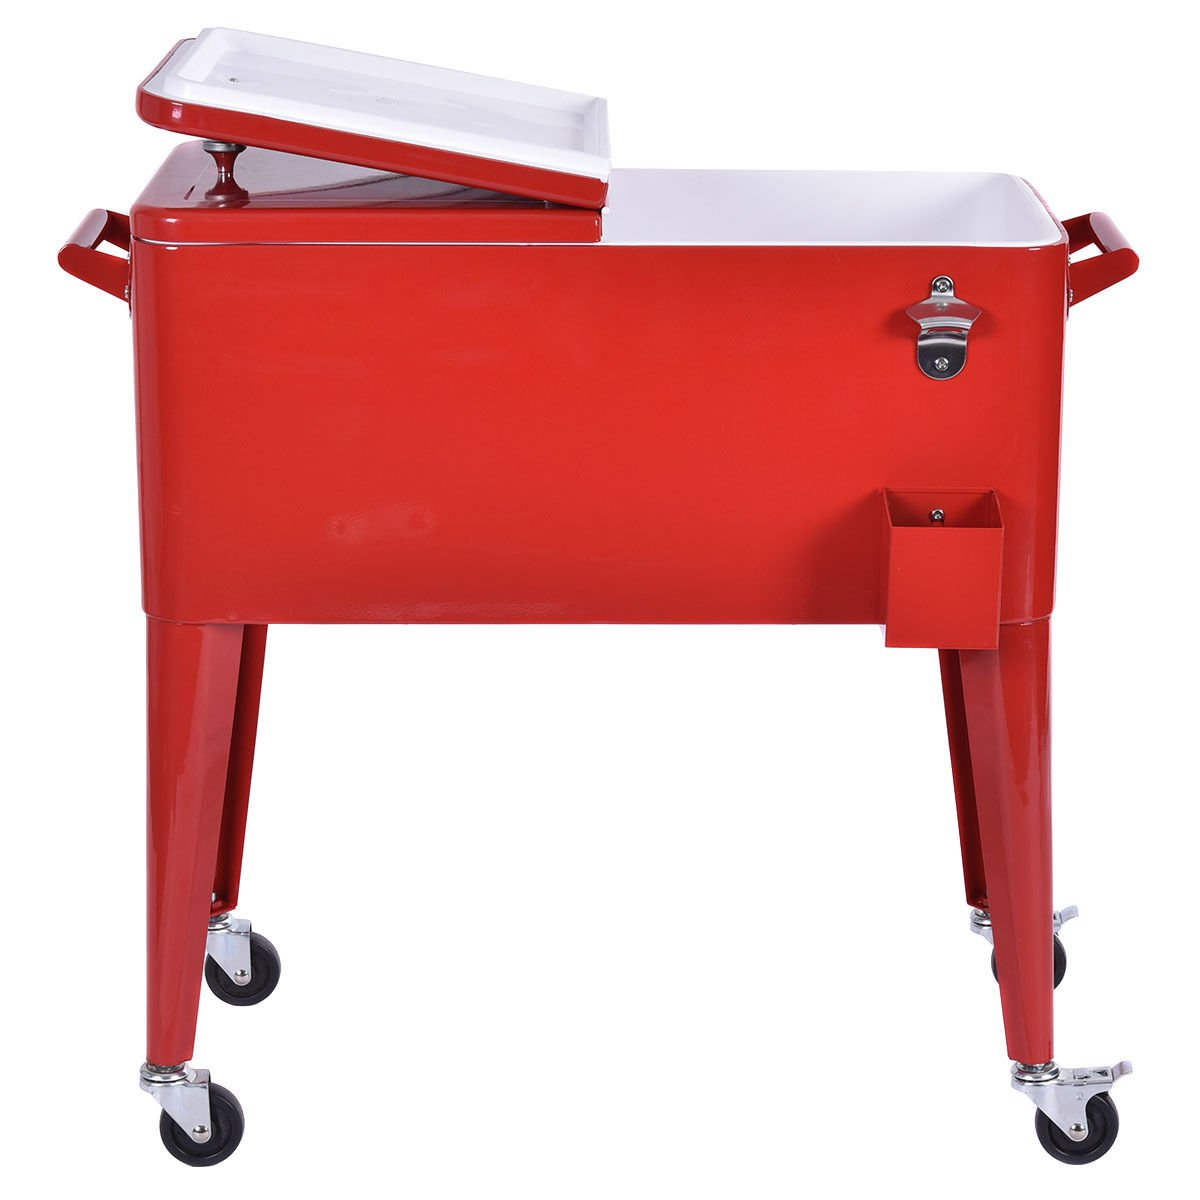 Red Steel Plastic Material Cooler Rolling Cart for Outdoor with Drain Plug